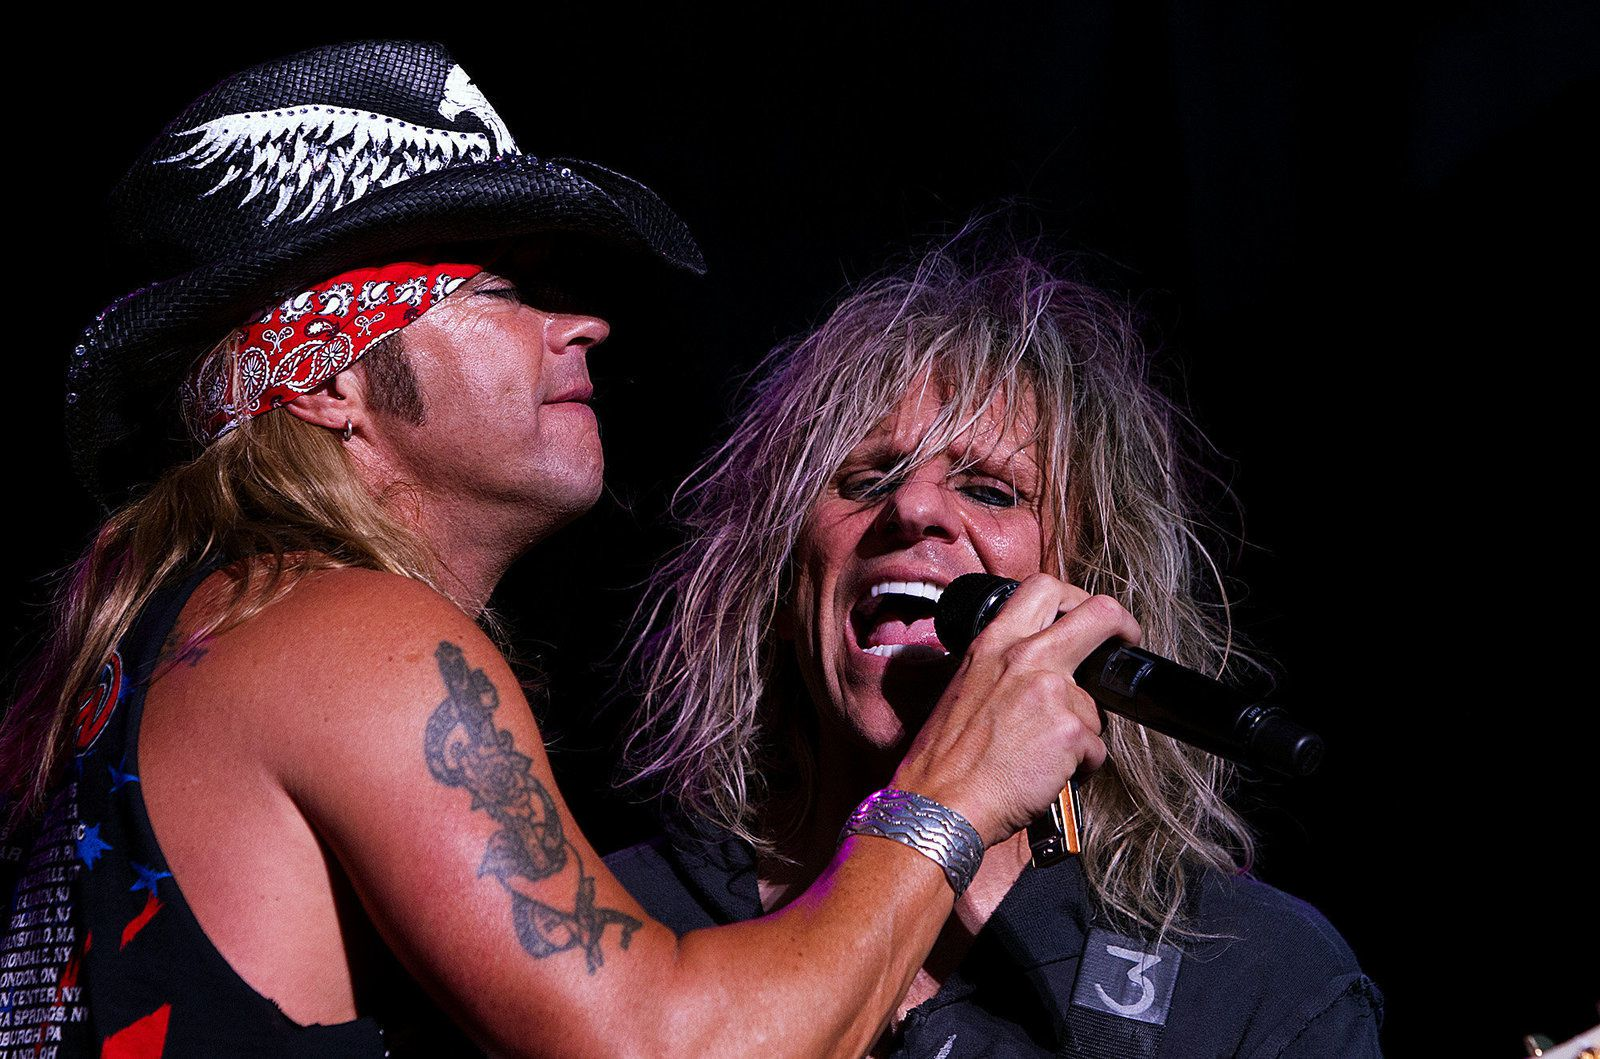 Poison's Bret Michaels and C.C. DeVille perform during the Rock of Ages Tour at Hersheypark Stadium (August 15, 2012)